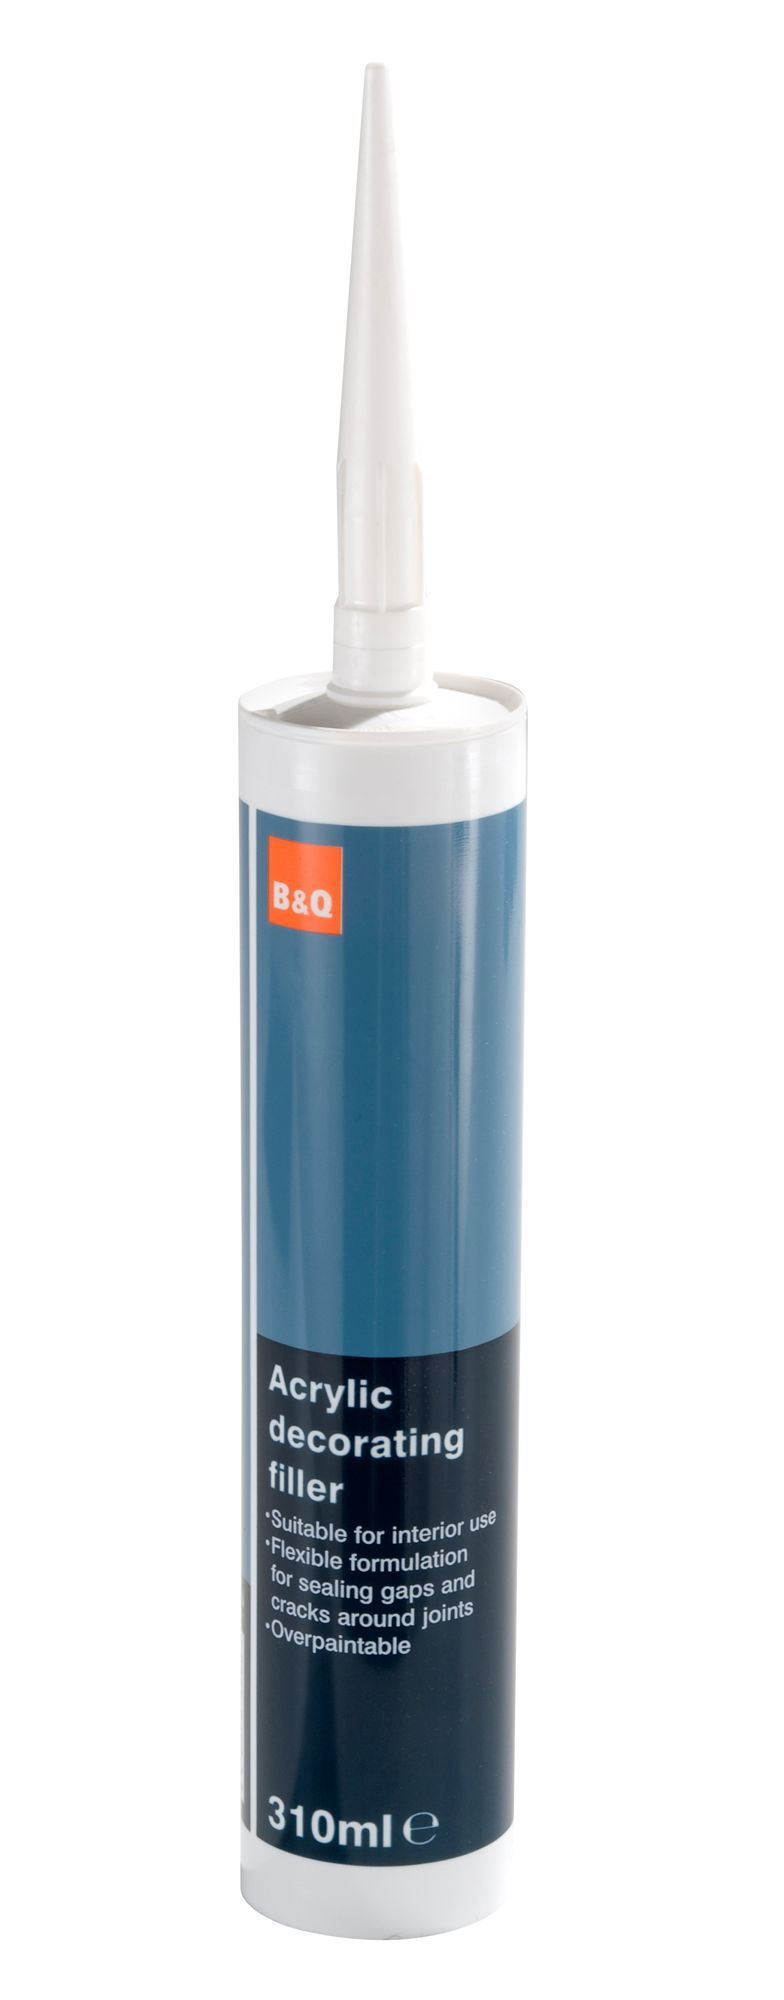 B&Q Acrylic decorating filler 310ml | Departments | DIY at B&Q